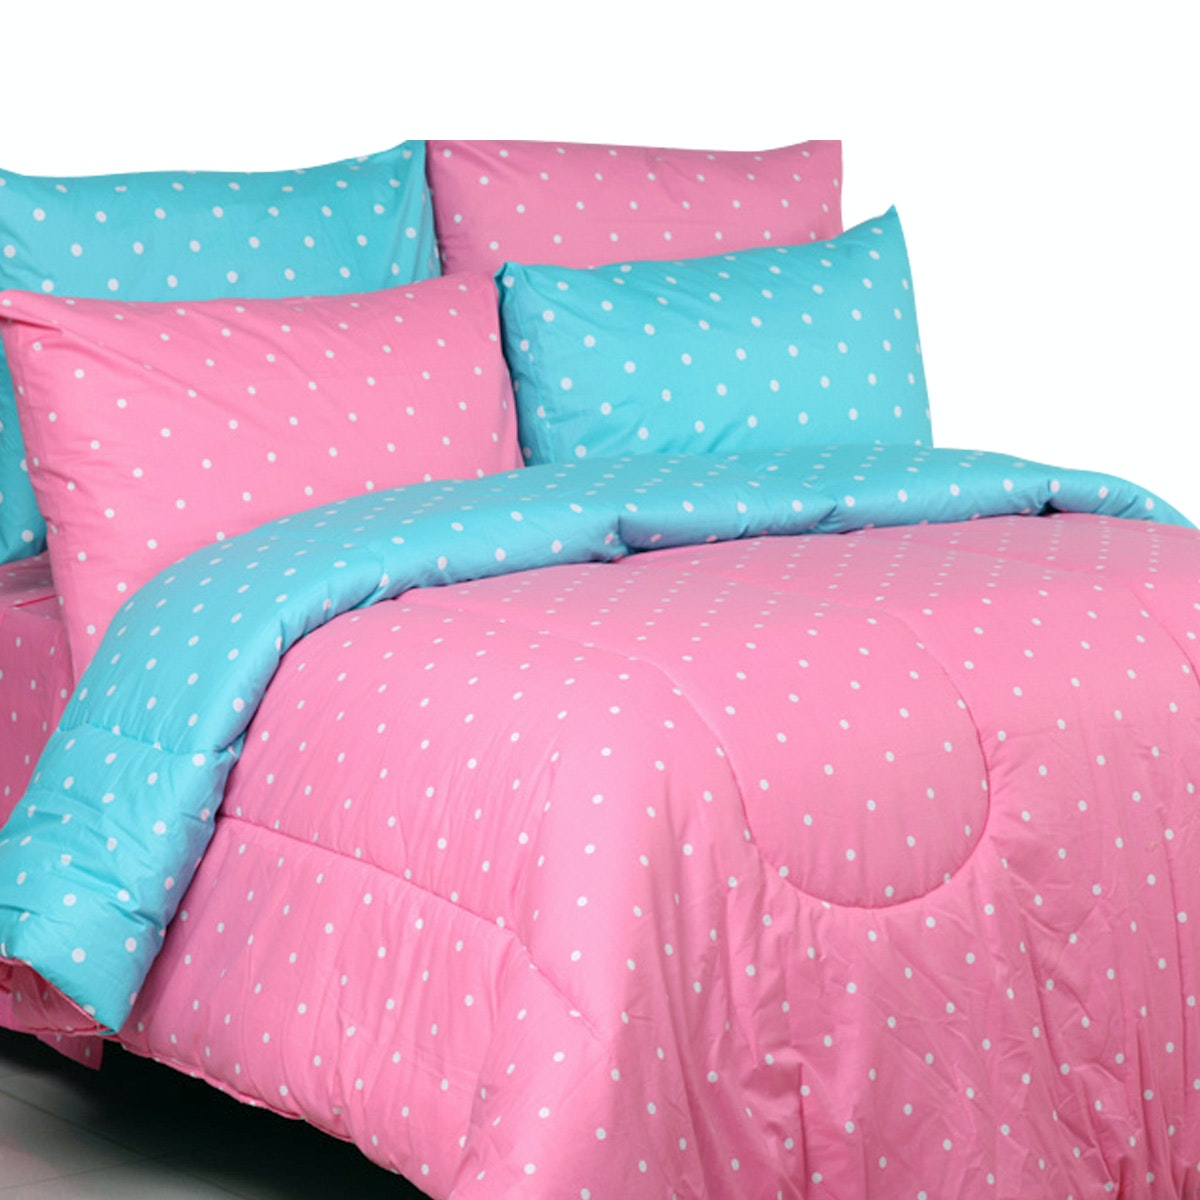 Sierra Bed Cover Dan Sprei Dottie Candy Mix Dottie Tosca 160x200